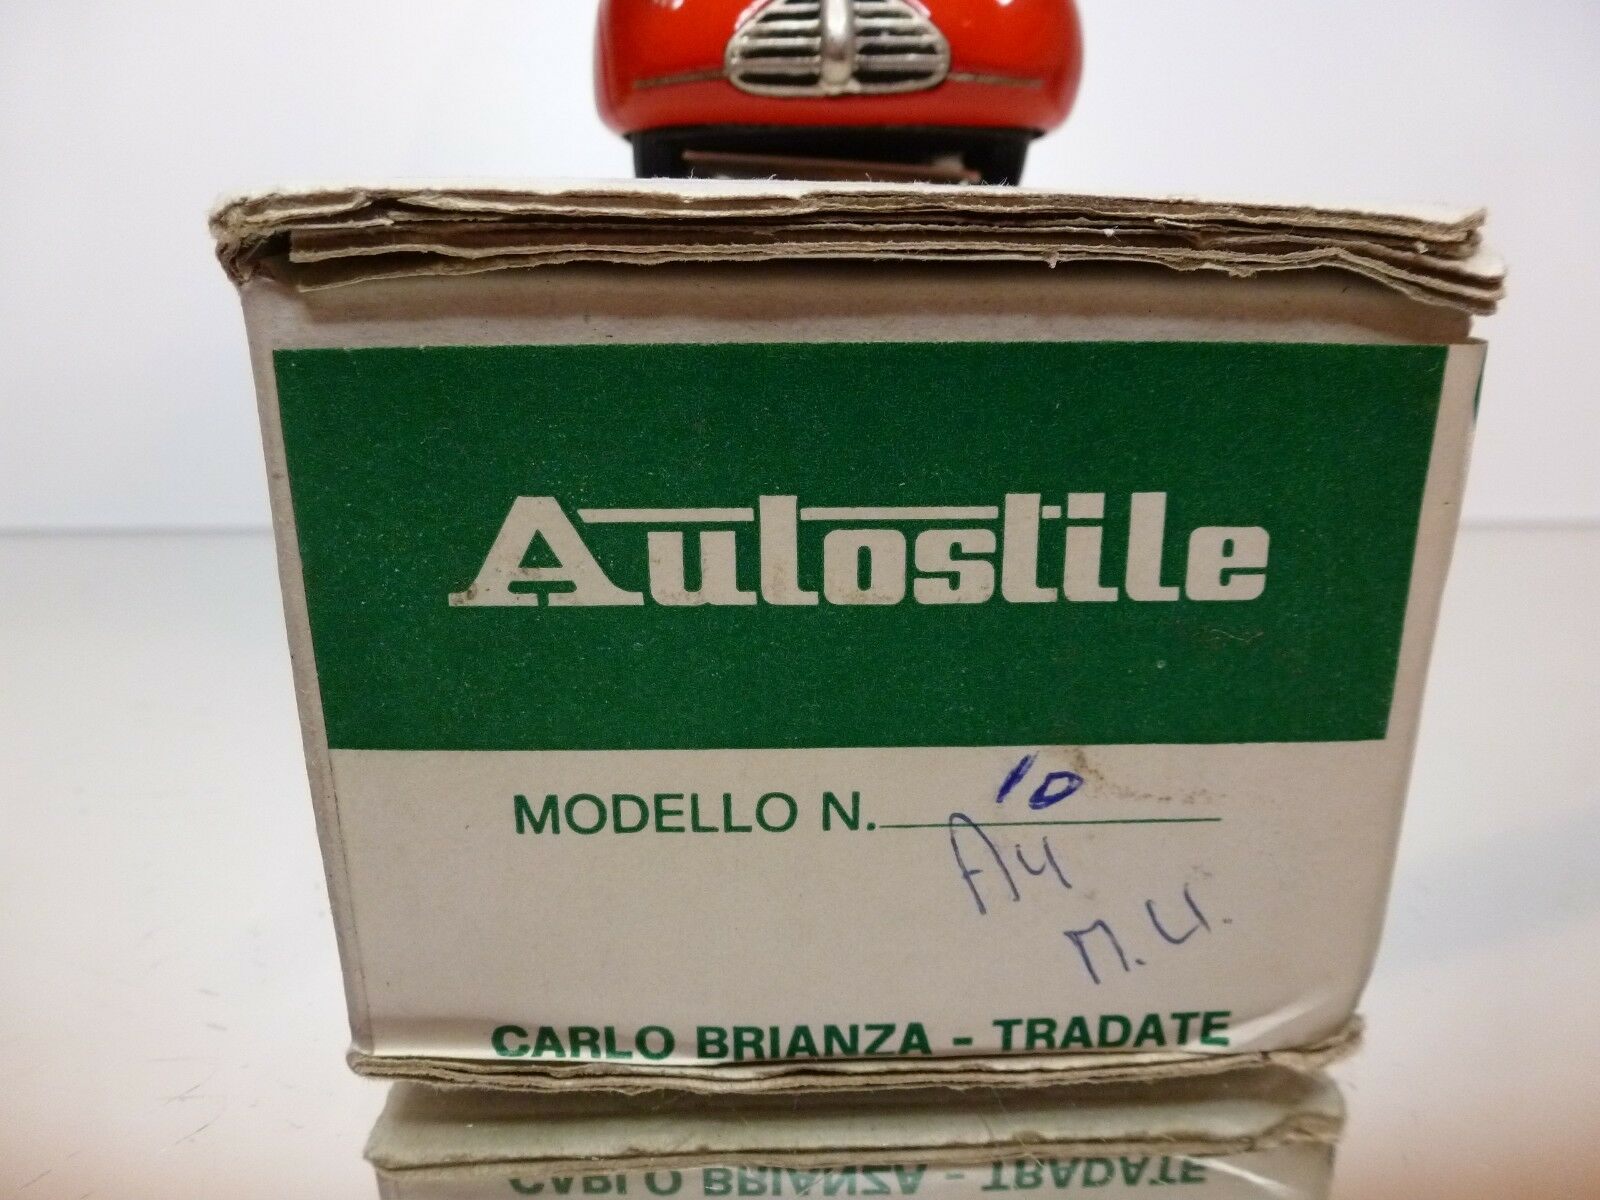 AUTOSTILE BRIANZA 10 ALFA ROMEO 163 - 1941 - - - RED 1 43 RARE - EXCELLENT IN BOX 94af5c